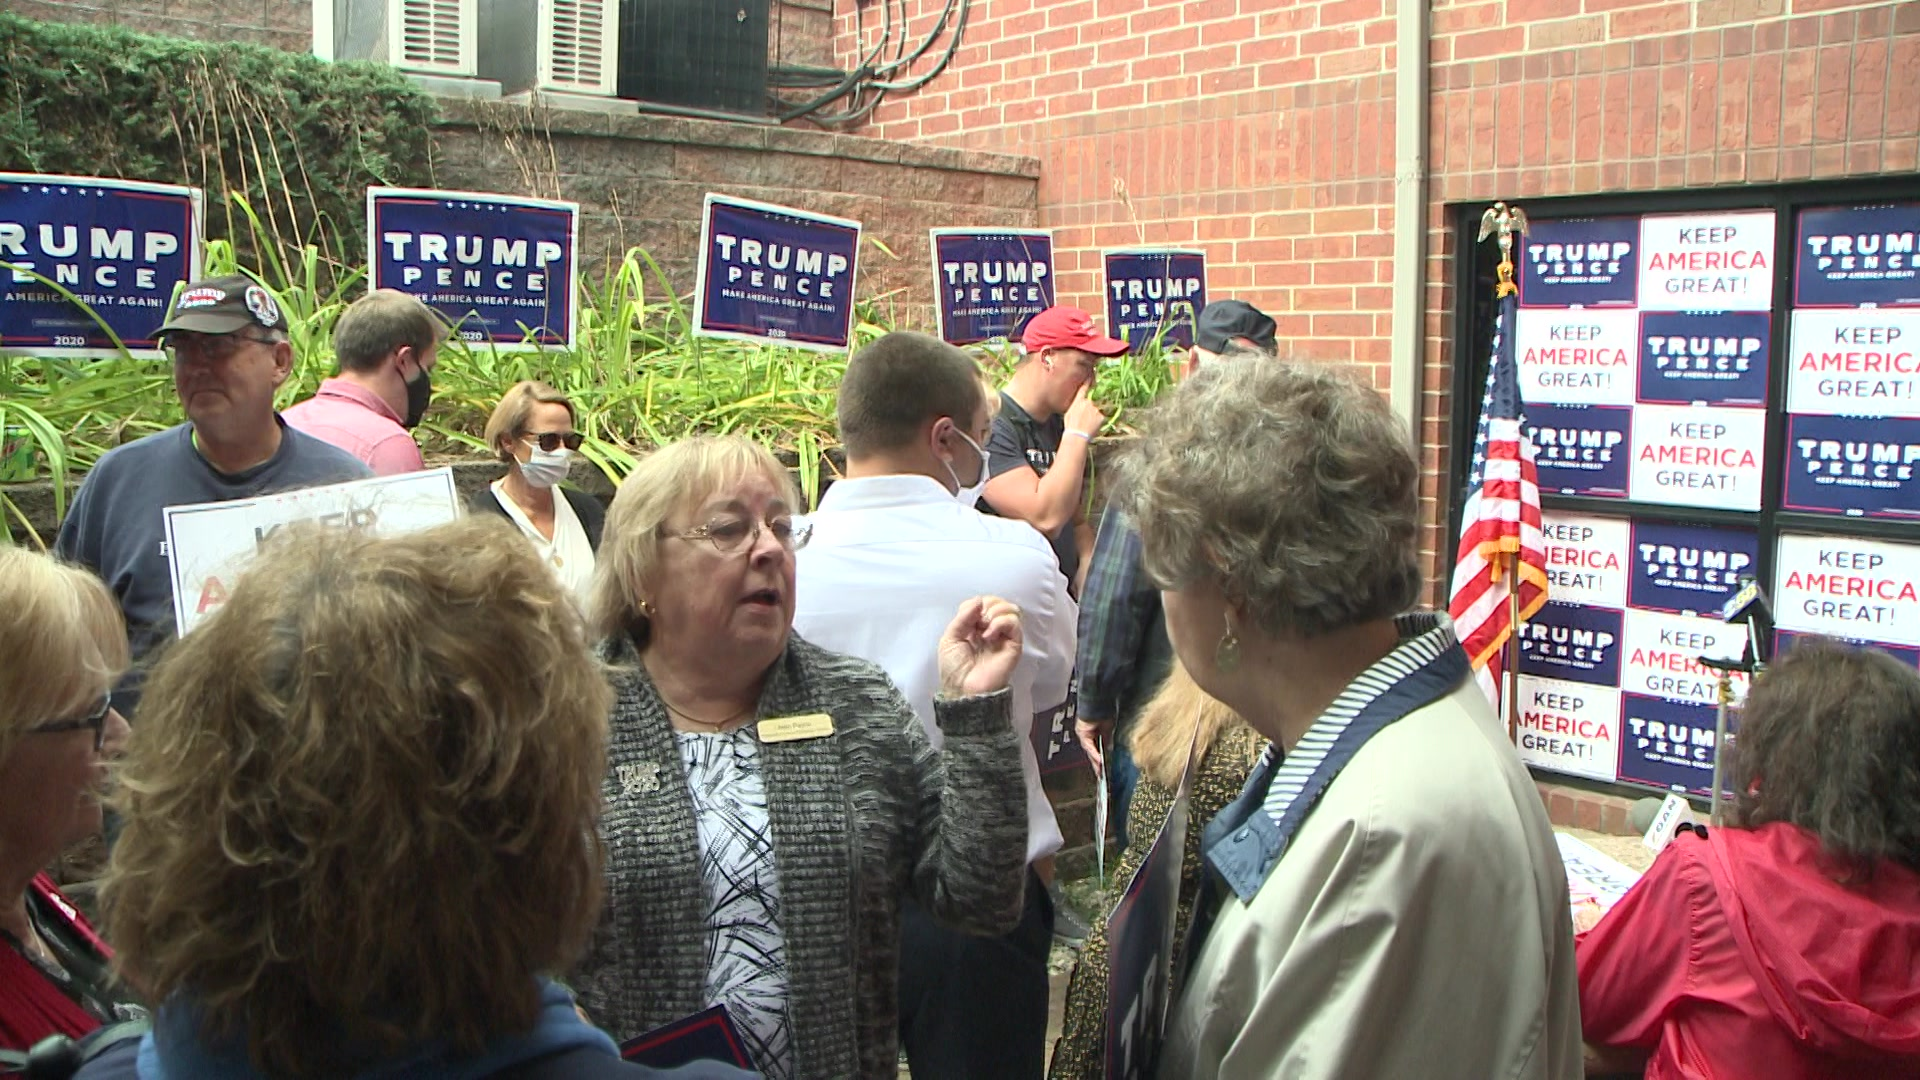 MAGA meet-up hosted in Germantown to connect with Trump supporters